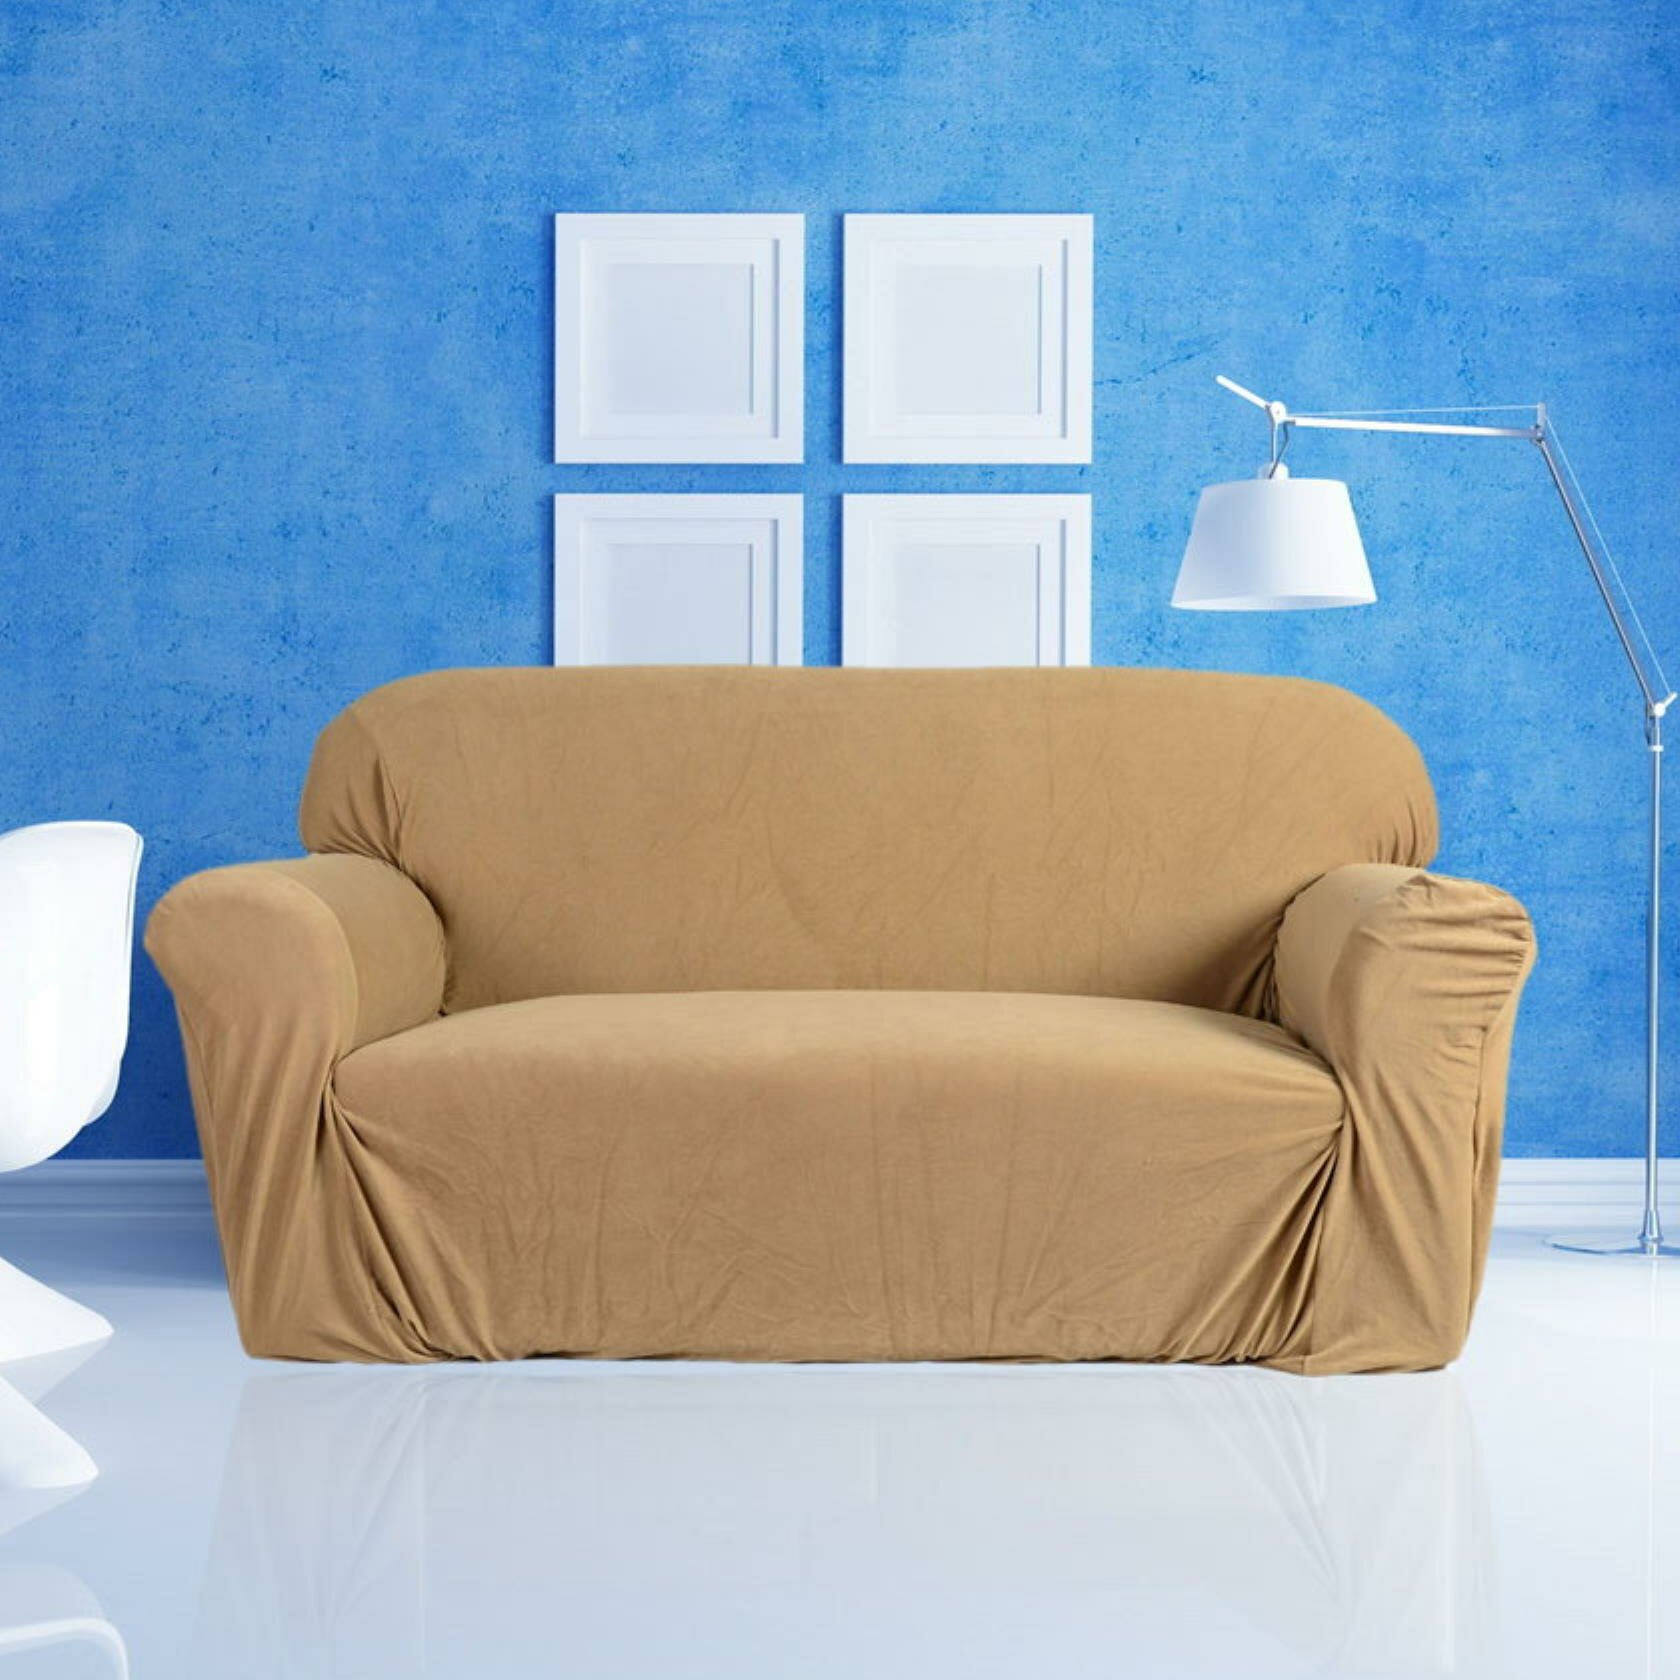 Stretch 3-Seat Sofa Slipcover